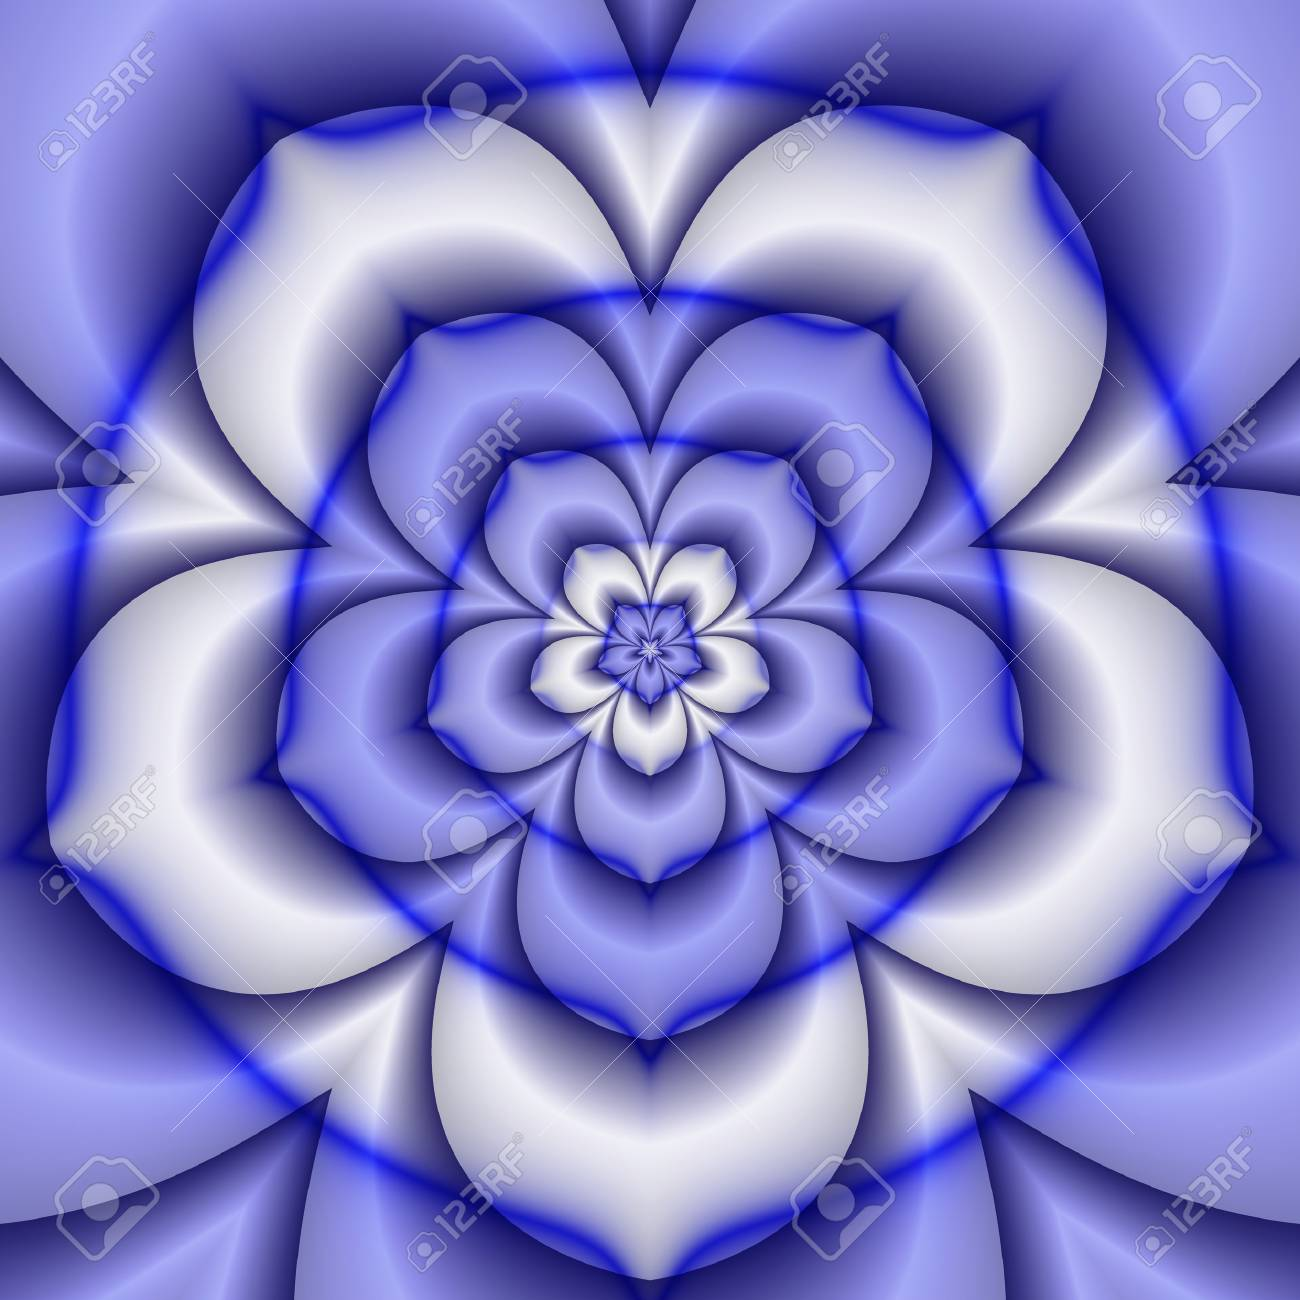 Abstract Background Of Concentric Blue And White Flower Creating The  Illusion Of A Three Dimensional Object